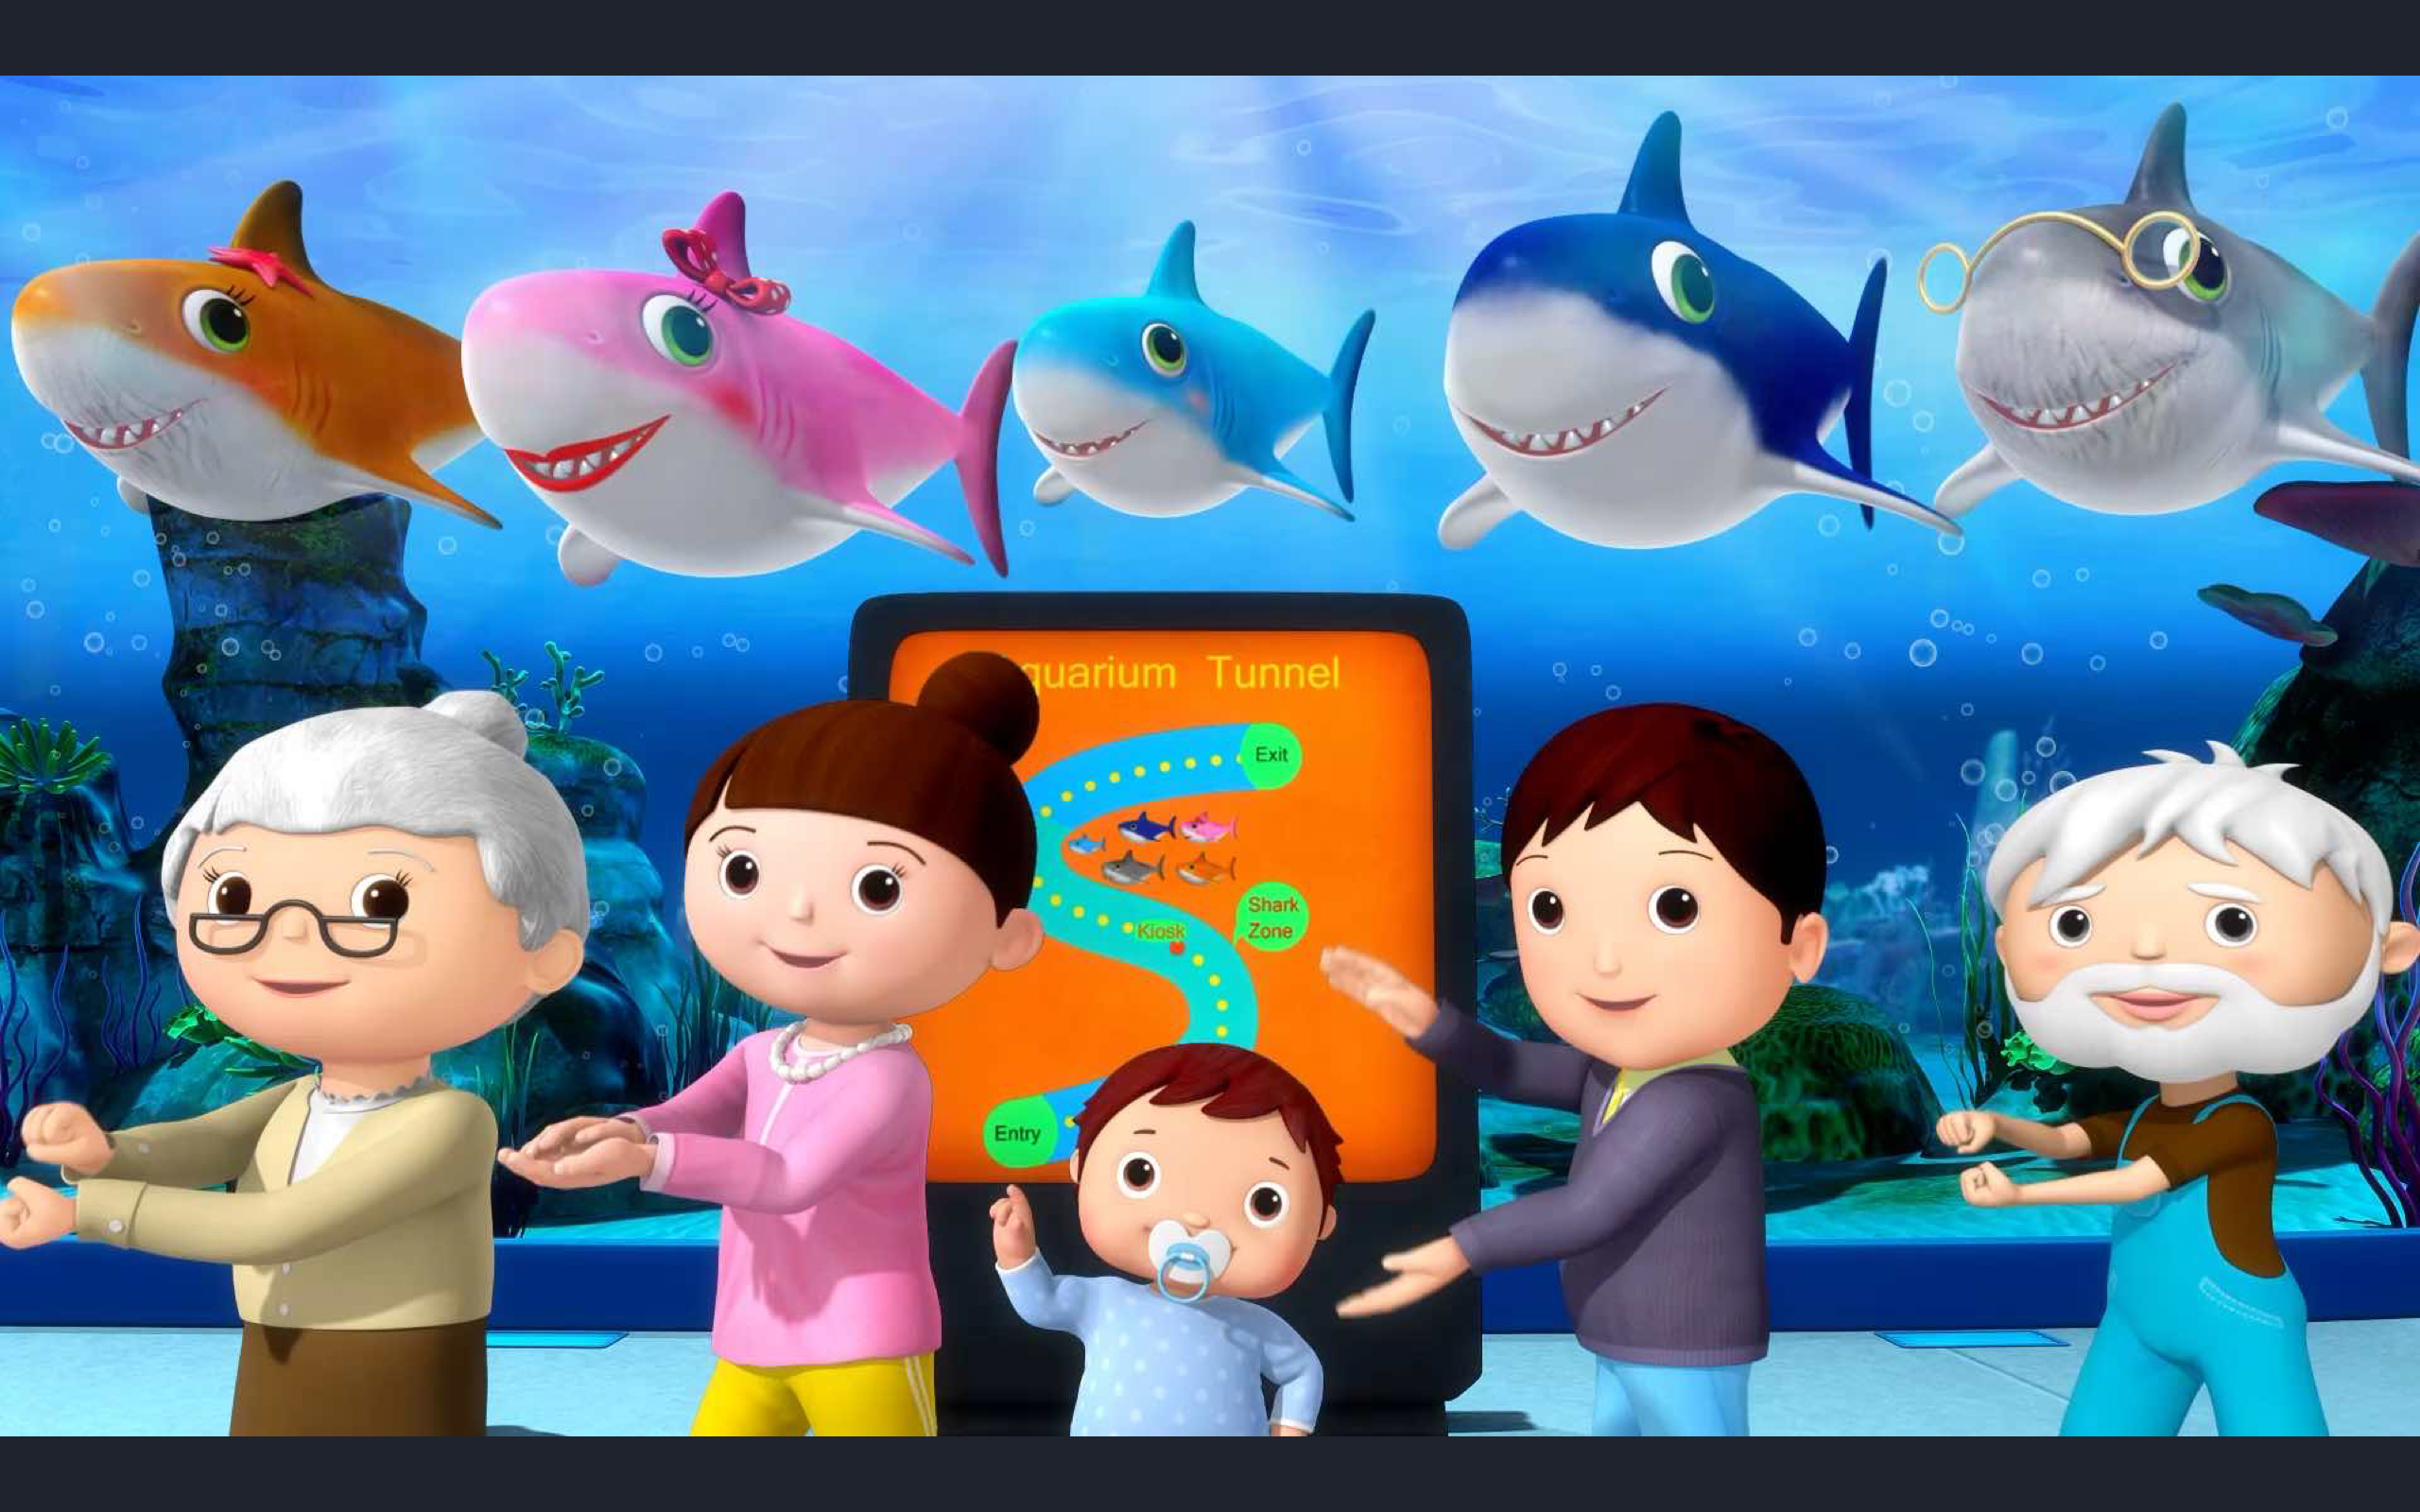 Little Baby Bum: Amazon.co.uk: Appstore for Android